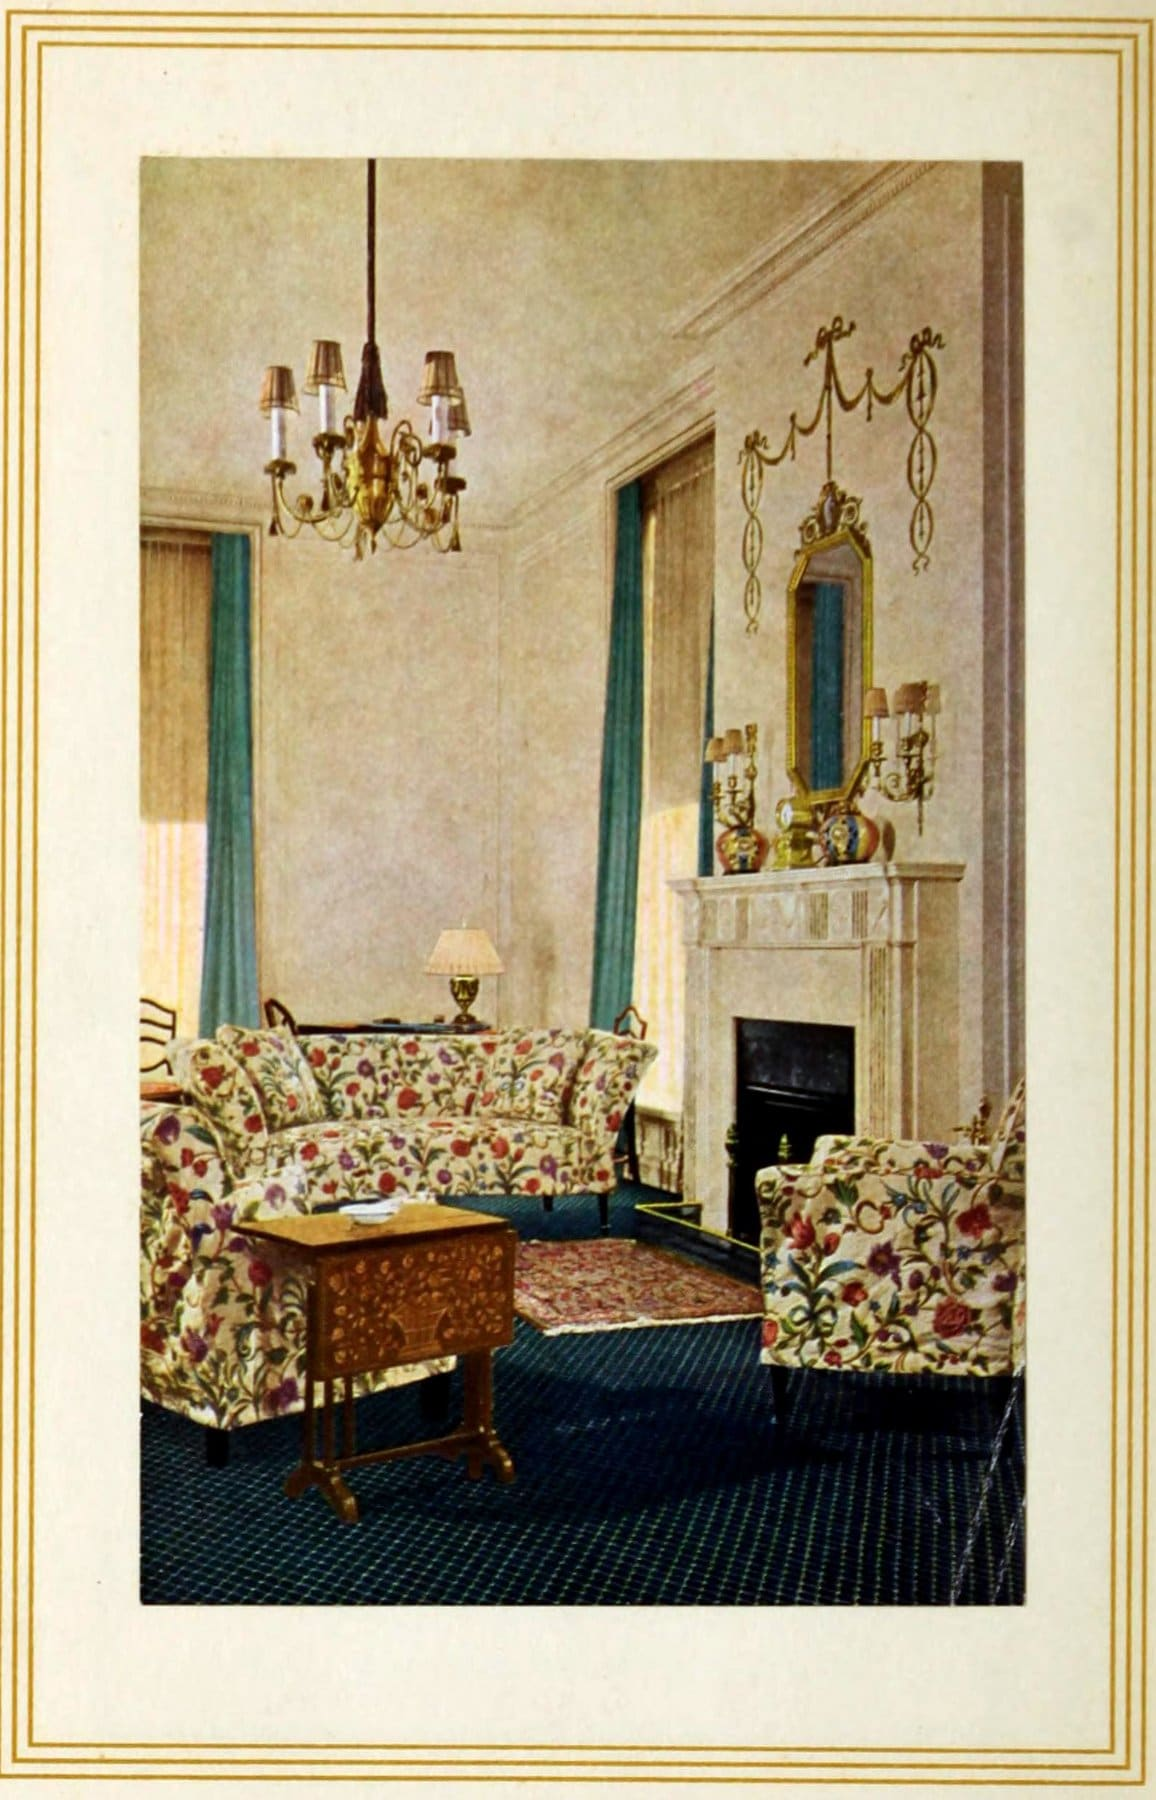 A guest room in the old Ritz-Carlton hotel in New York (1936)